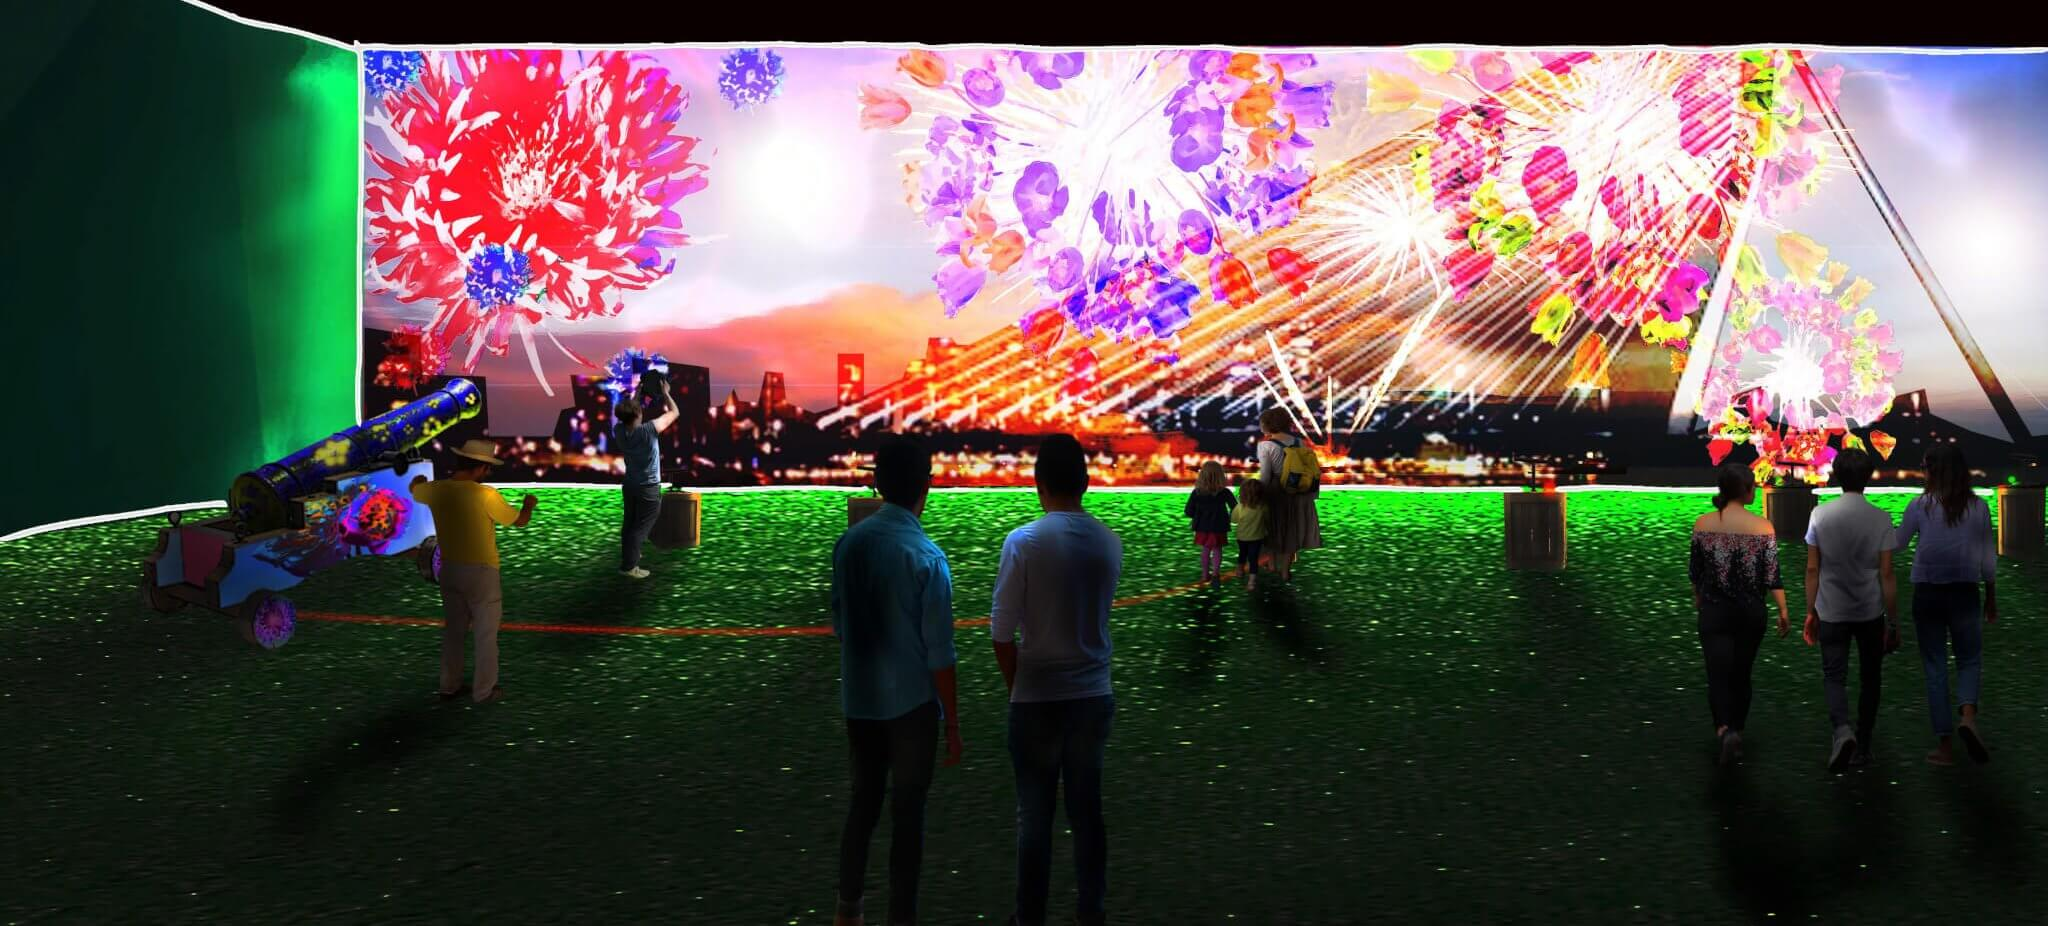 FloriWorld Amsterdam: the first flower experience in the world in Aalsmeer